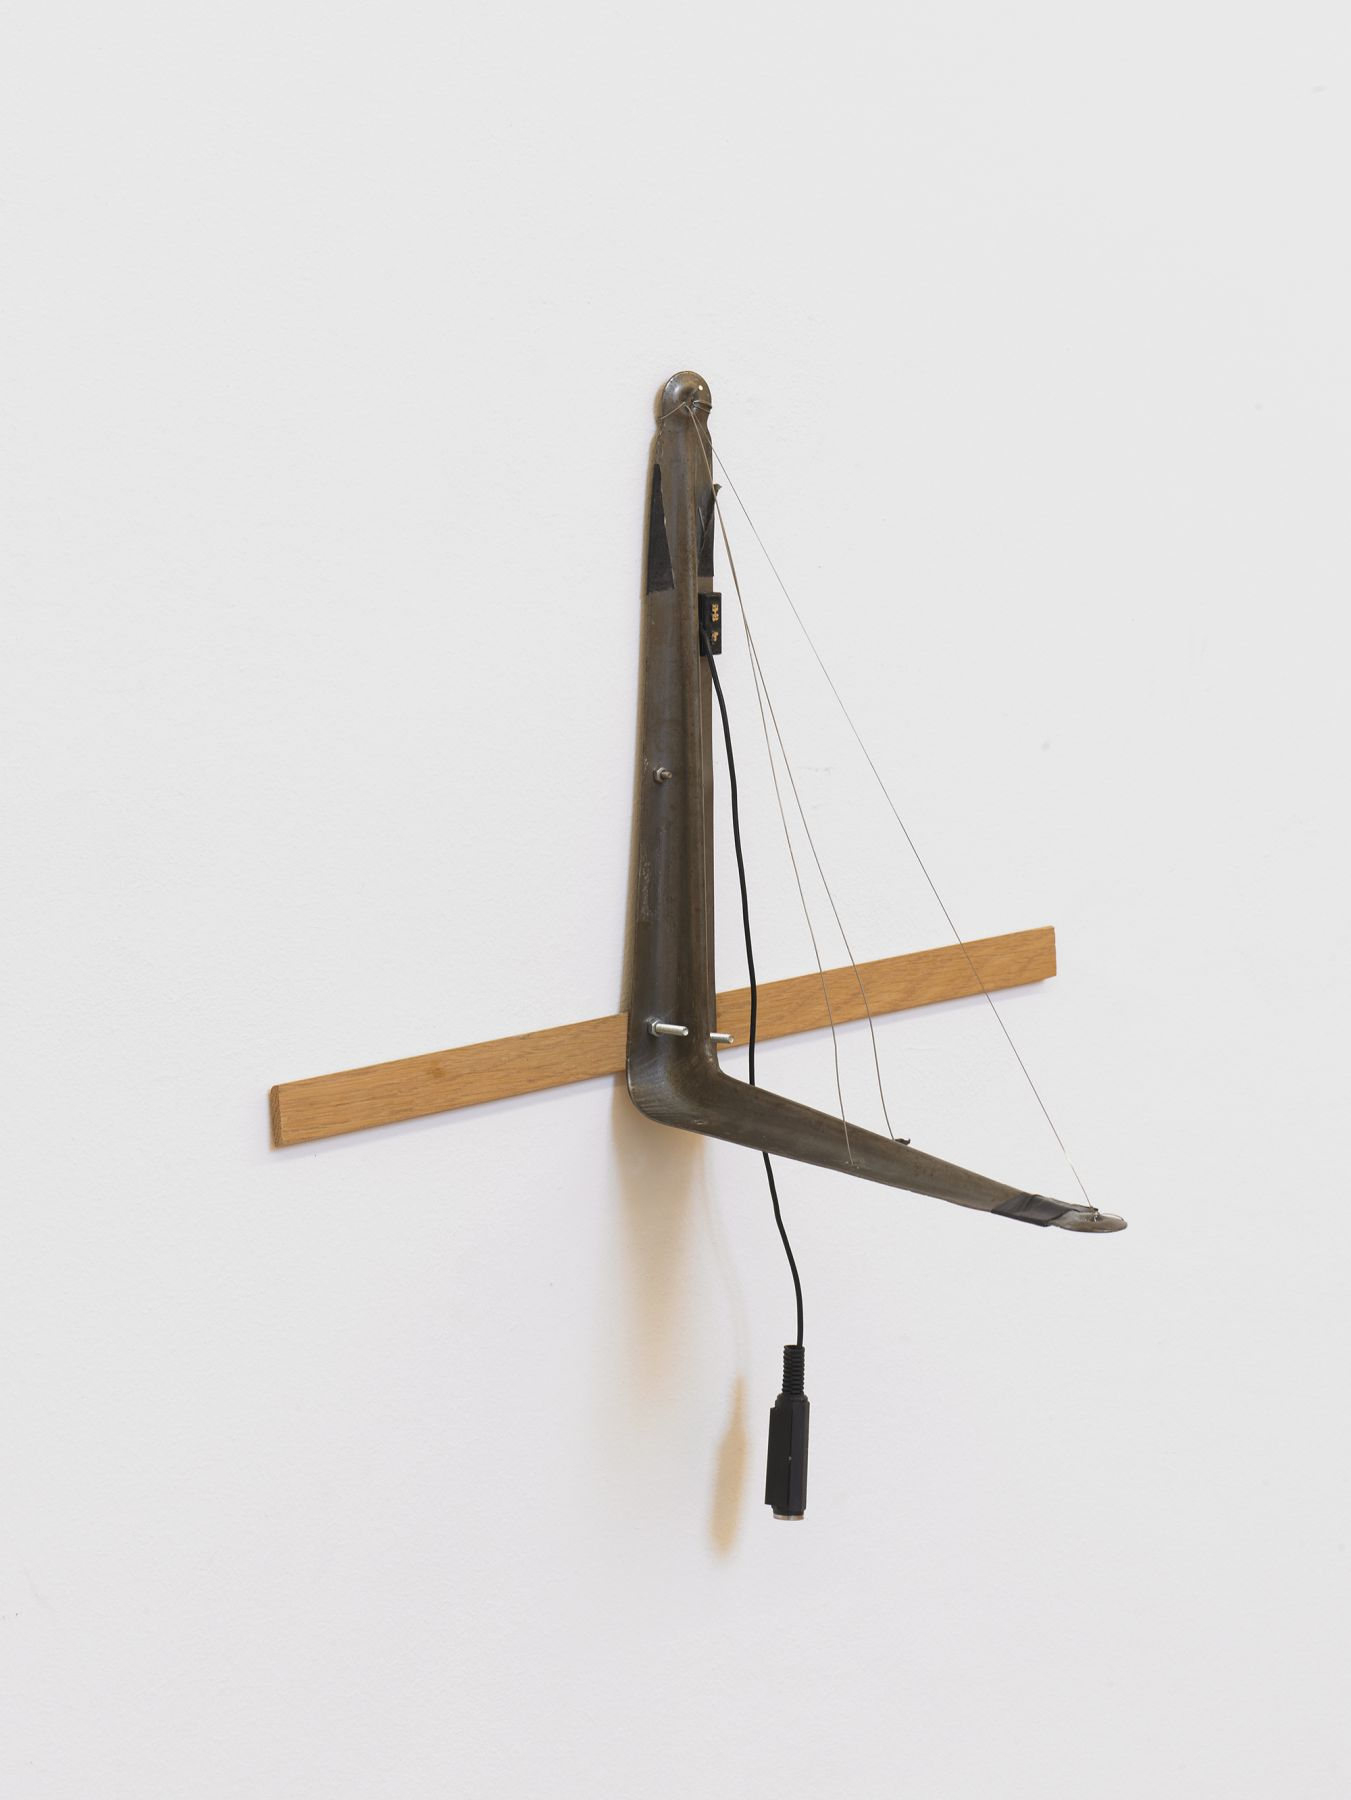 Tony Conrad L-bracket with Three Strings, 2002 Bowed wire (hand stretched), L-bracket, electric pickup 13. 3/4 x 15 3/4 x 10 1/4 inches 35 x 40 x 26 cm